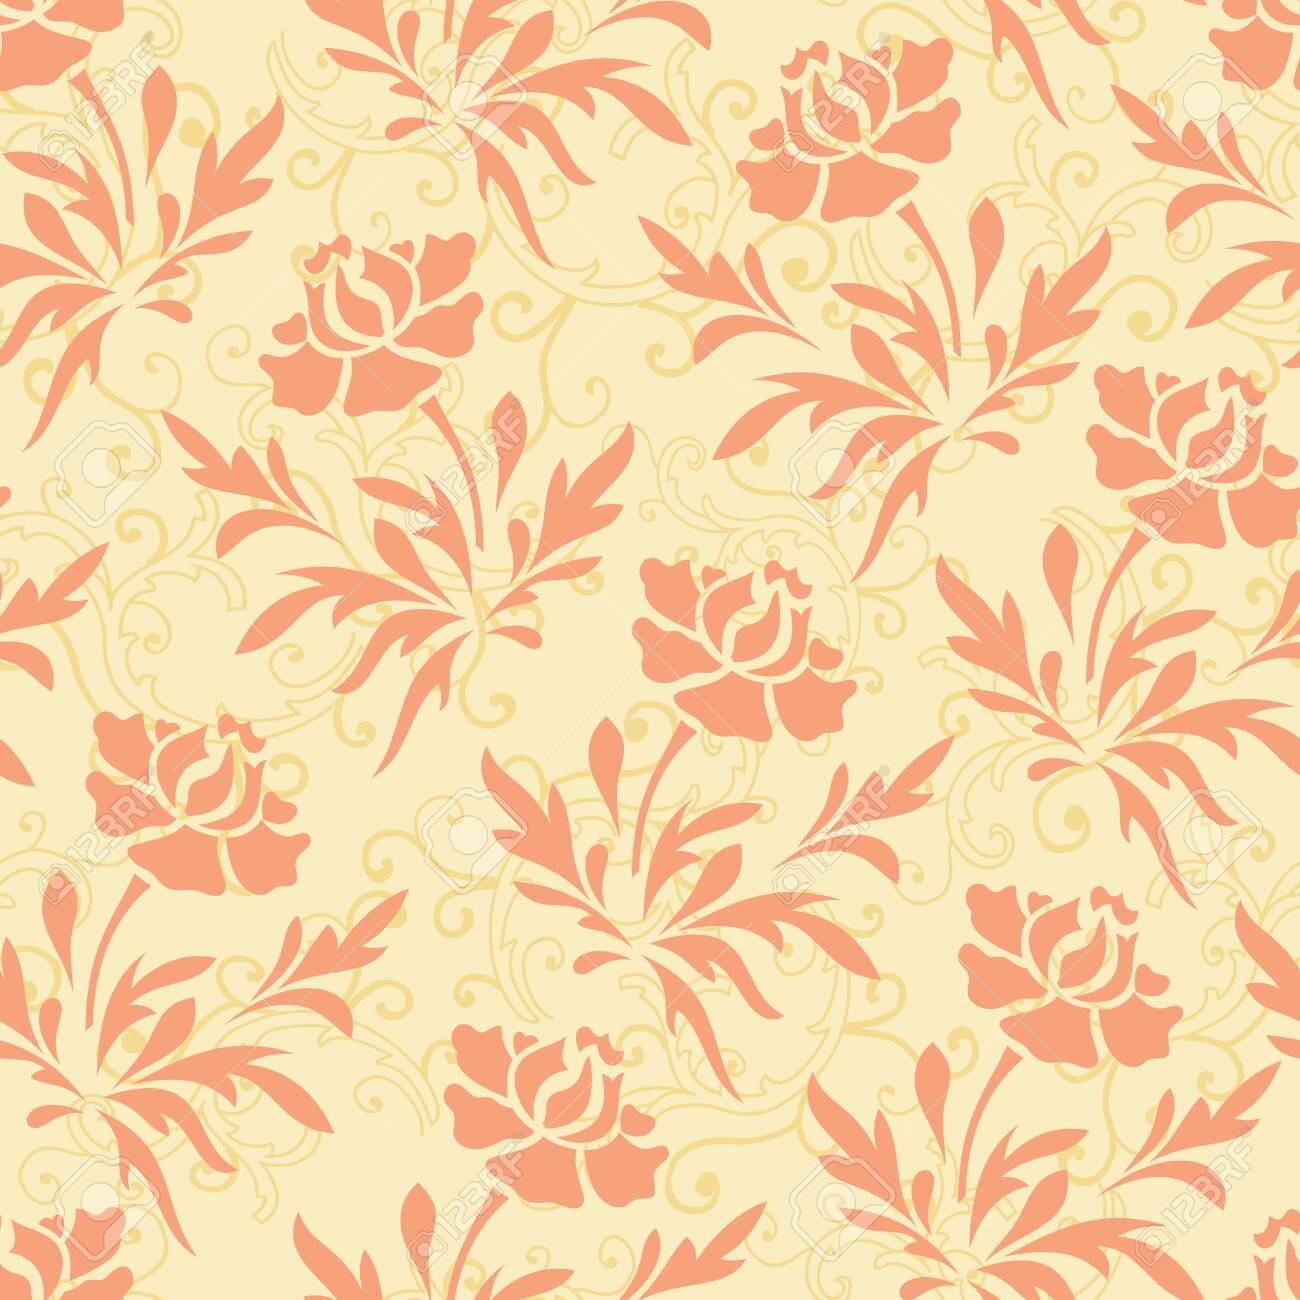 Vector pastel ornage and yellow rose flower with bail seamless pattern background - 144048059